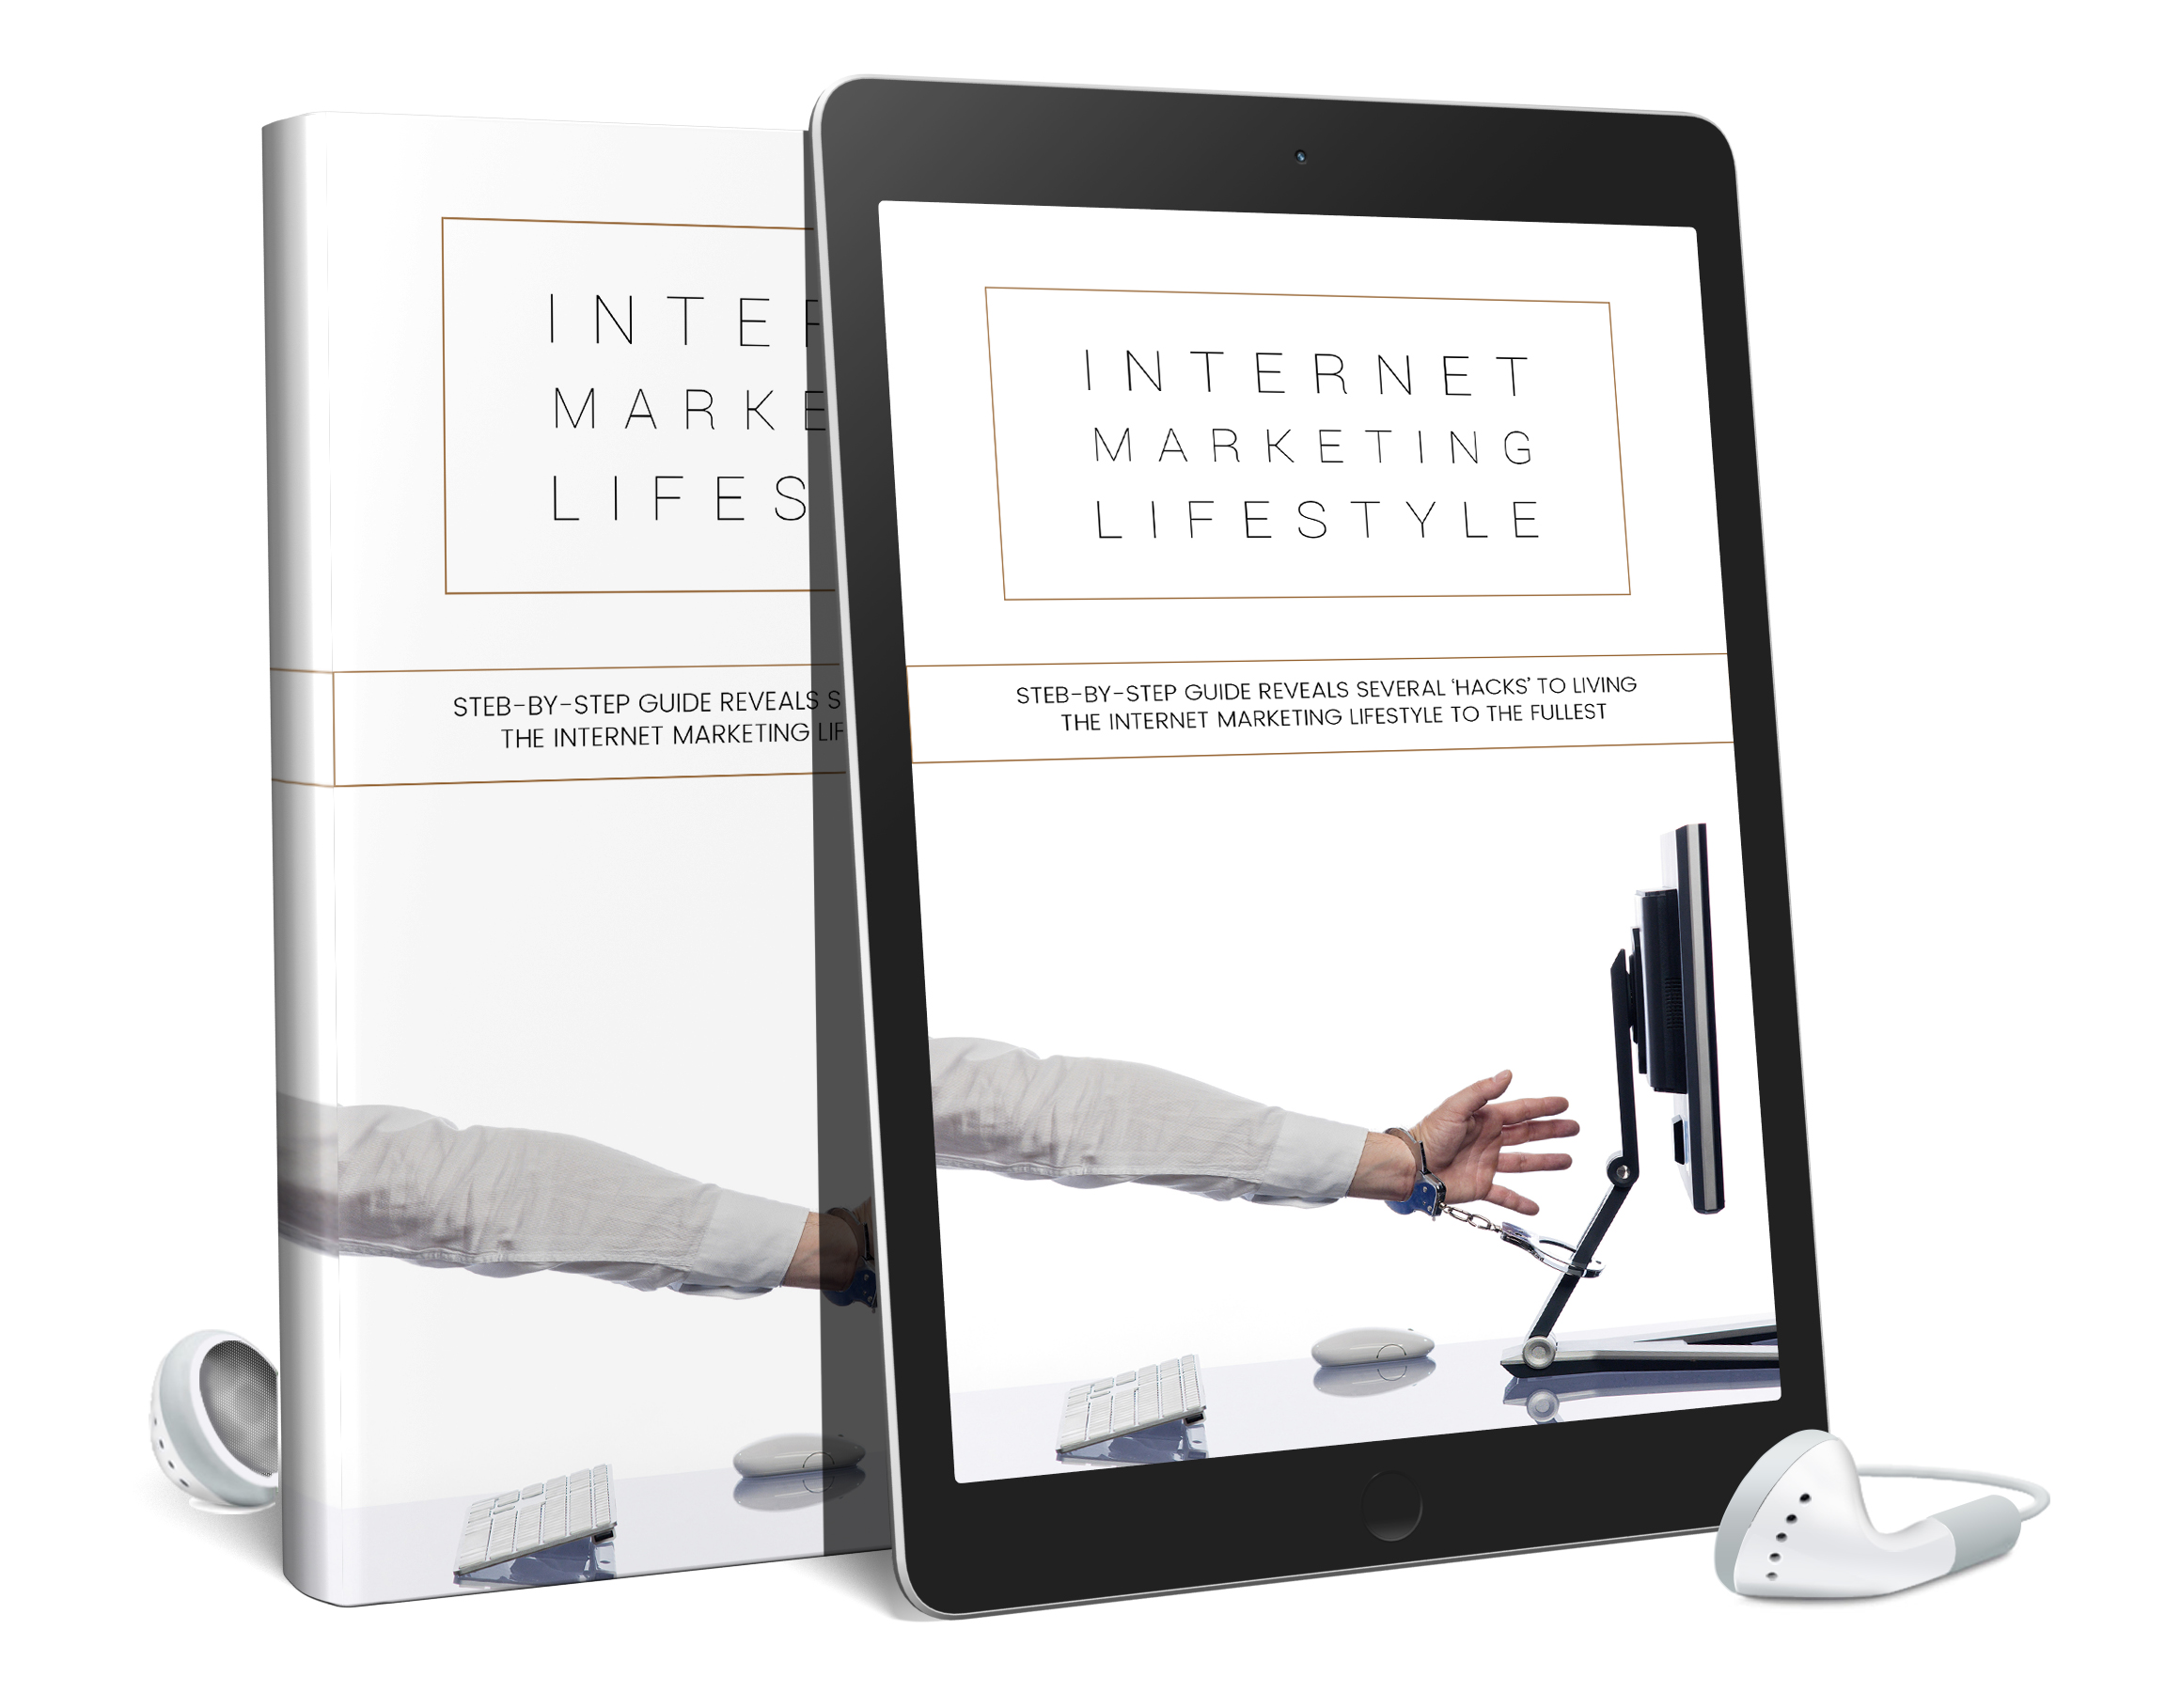 Internet Marketing Lifestyle Audio and Ebook